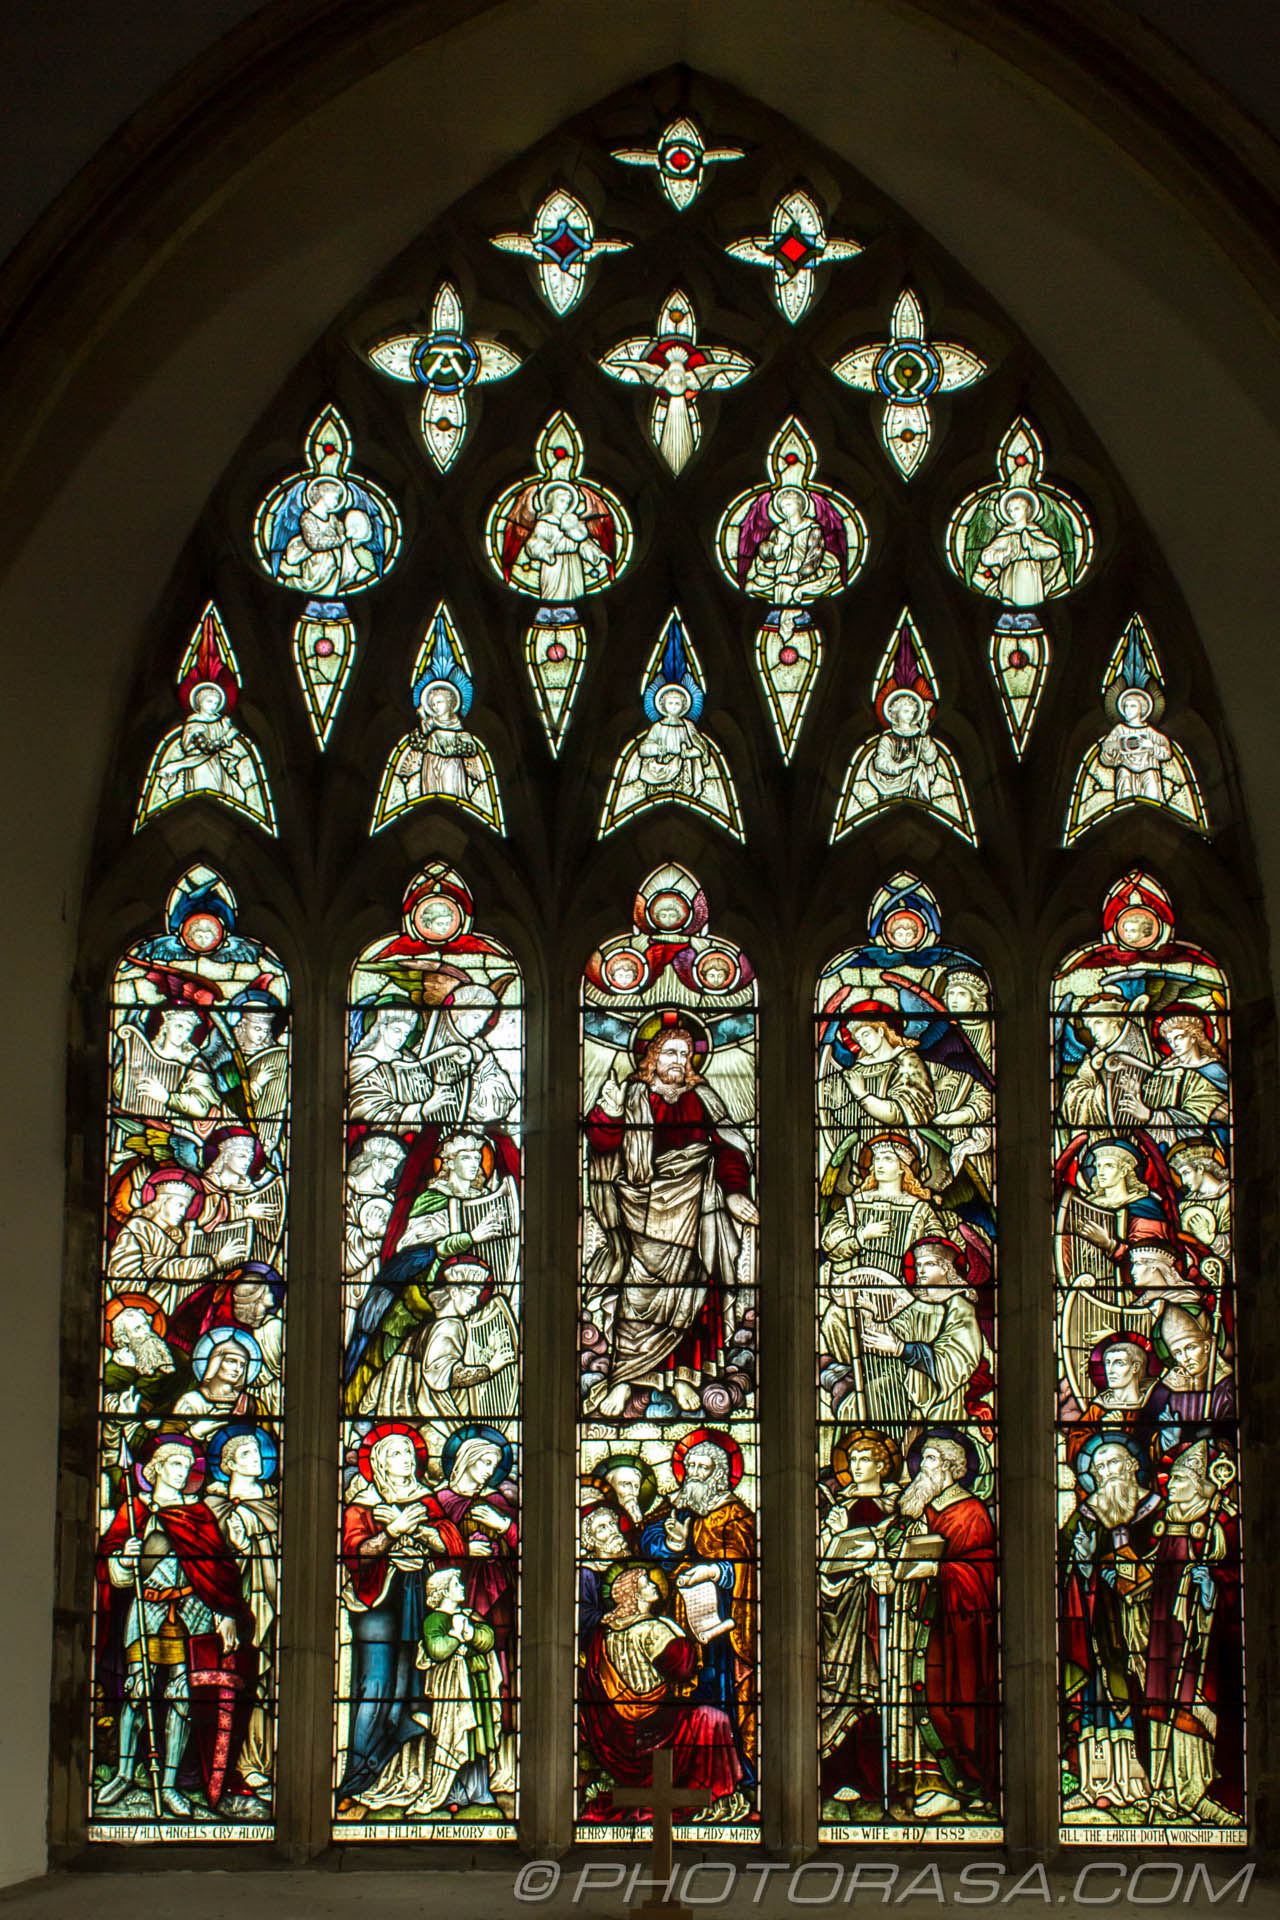 https://photorasa.com/saints-church-staplehurst-kent/stained-glass-of-jesus-surrounded-by-angels-and-saints/